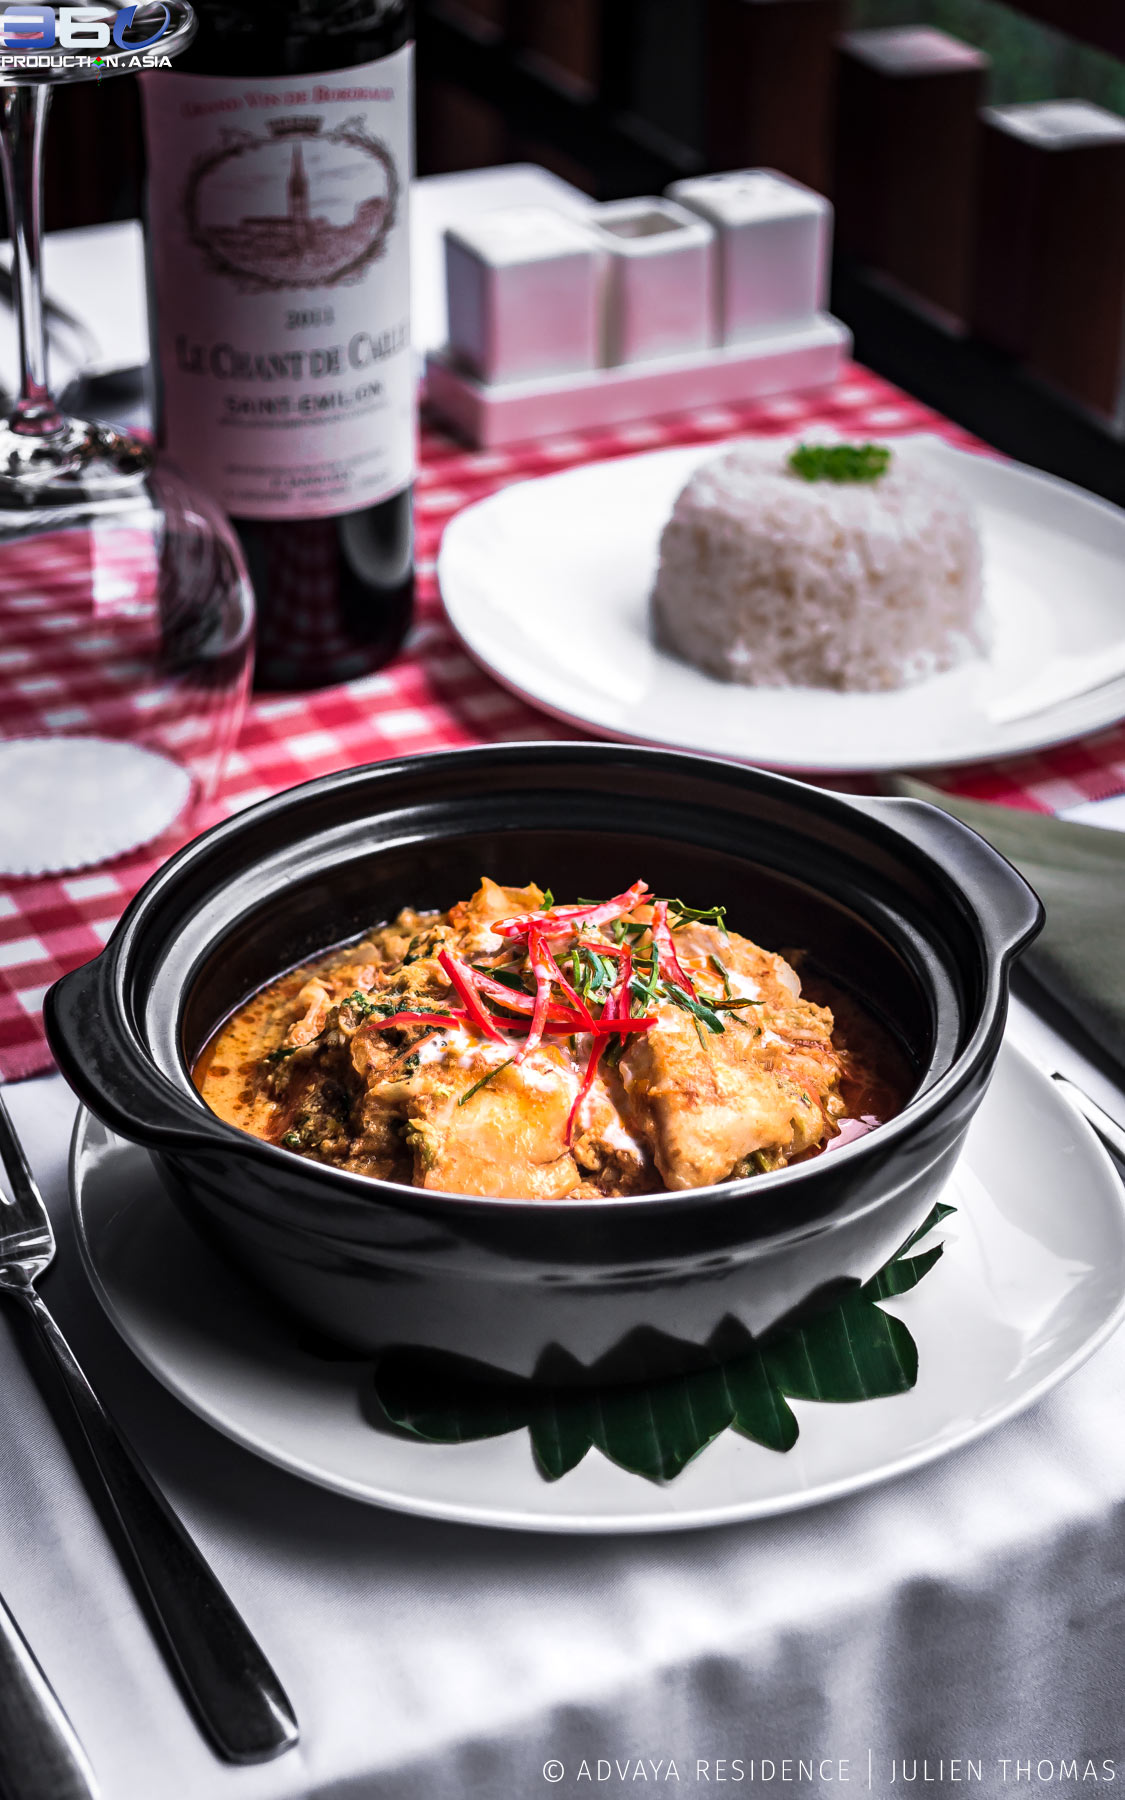 Lok Lak/Traditional Cambodian dish available in the Hotel restaurant.